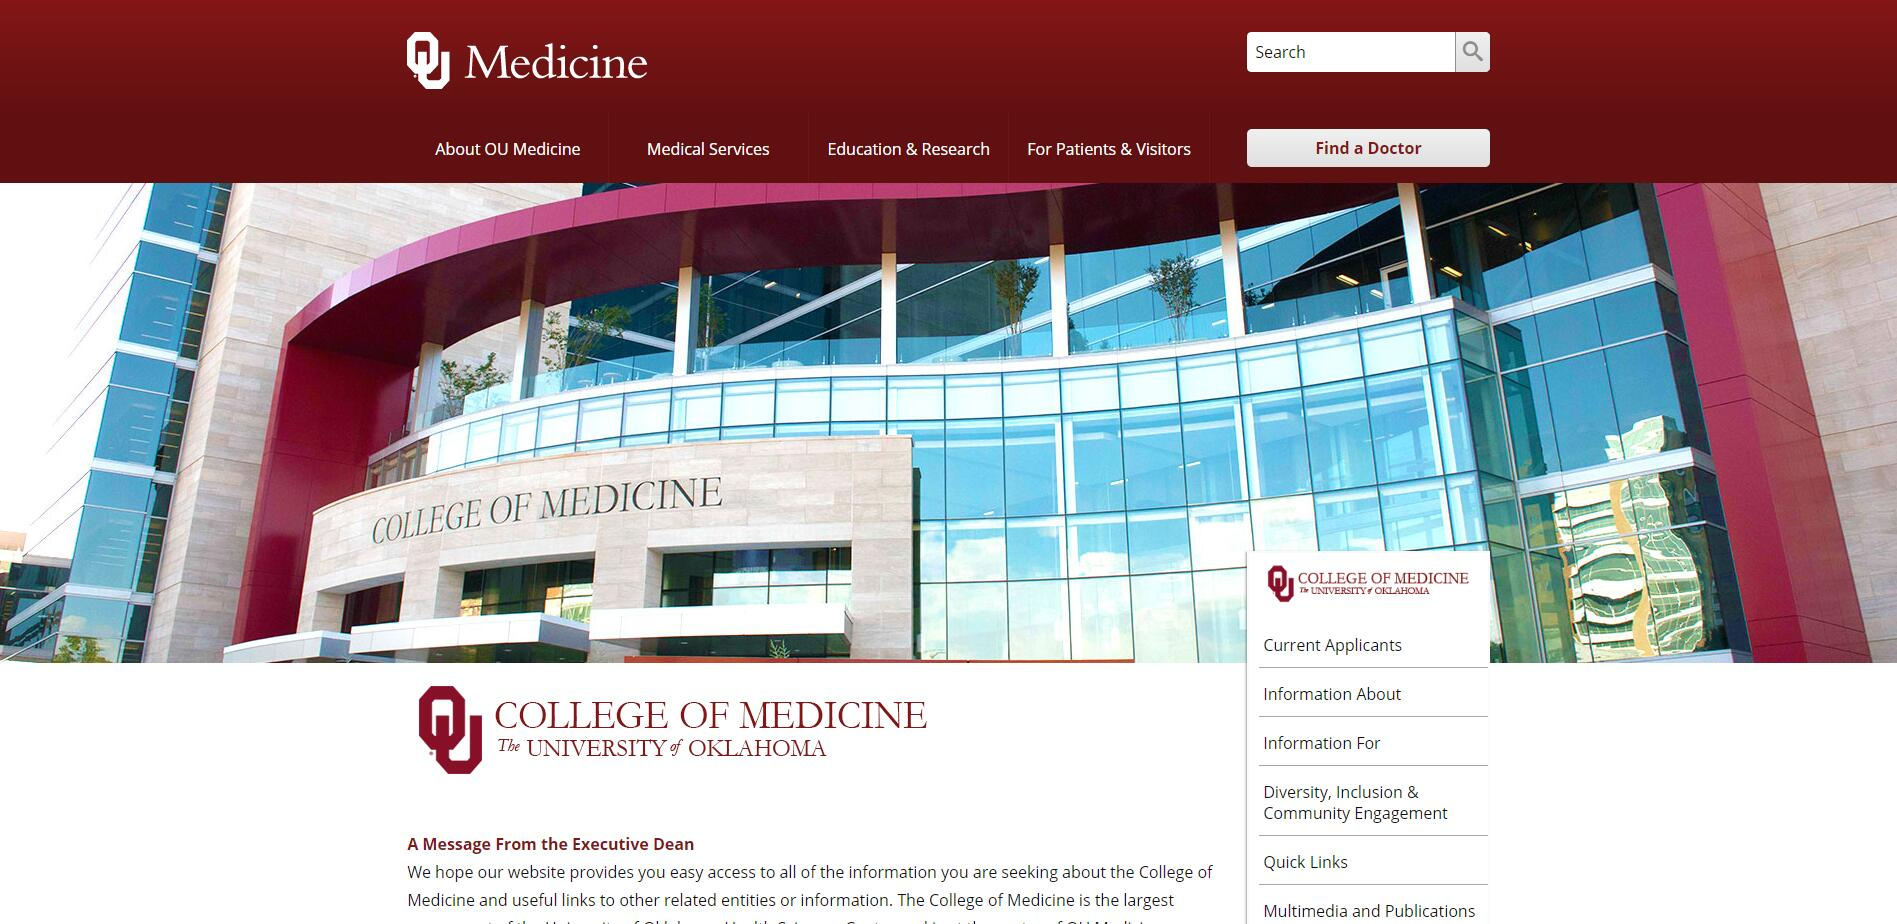 The College of Medicine at University of Oklahoma